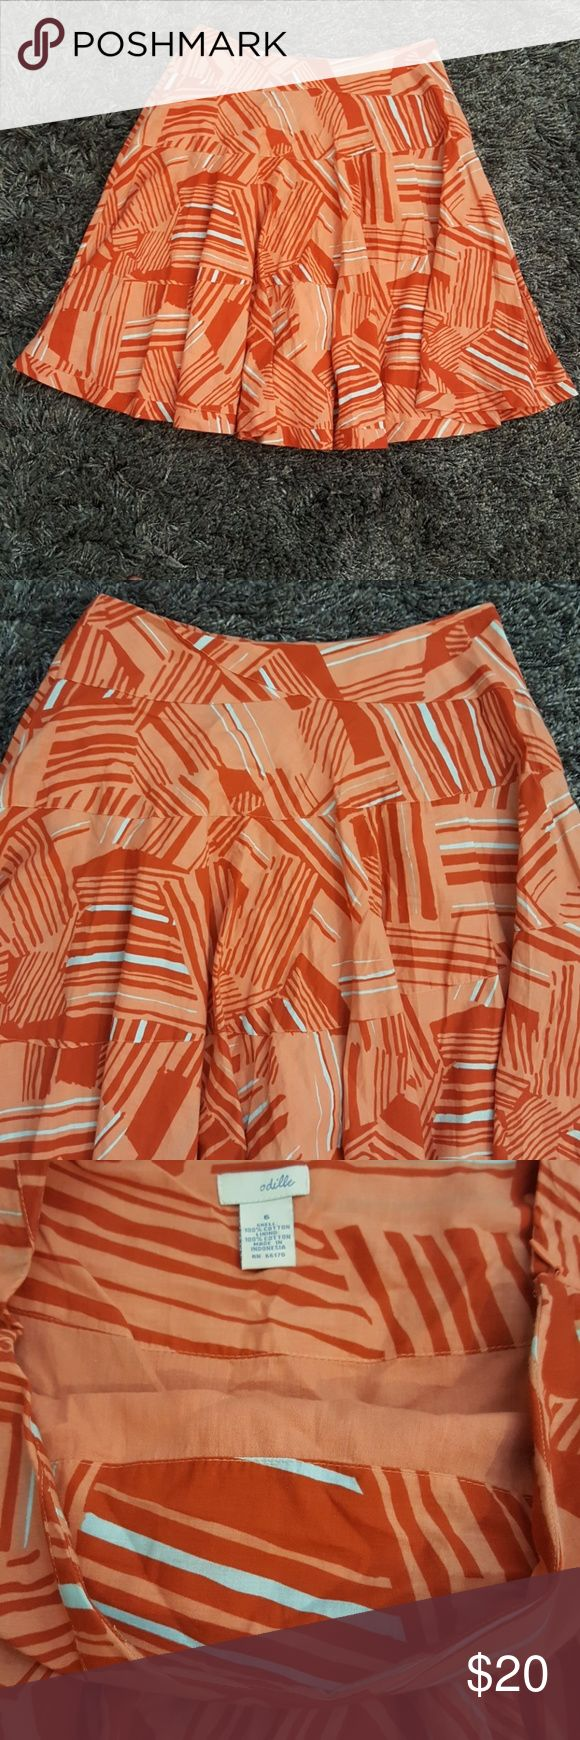 """Anthropologie Odille Orange Skirt - 6 This is a burnt orange and greyish abstract pattern skirt from Odille for Anthropologie. No stains or tears. Normal wear.  Approximately 23.5"""" long and 14.5"""" waist (no stretch). Zipper is functional. Fully lined.   Bundle & save. Anthropologie Skirts"""